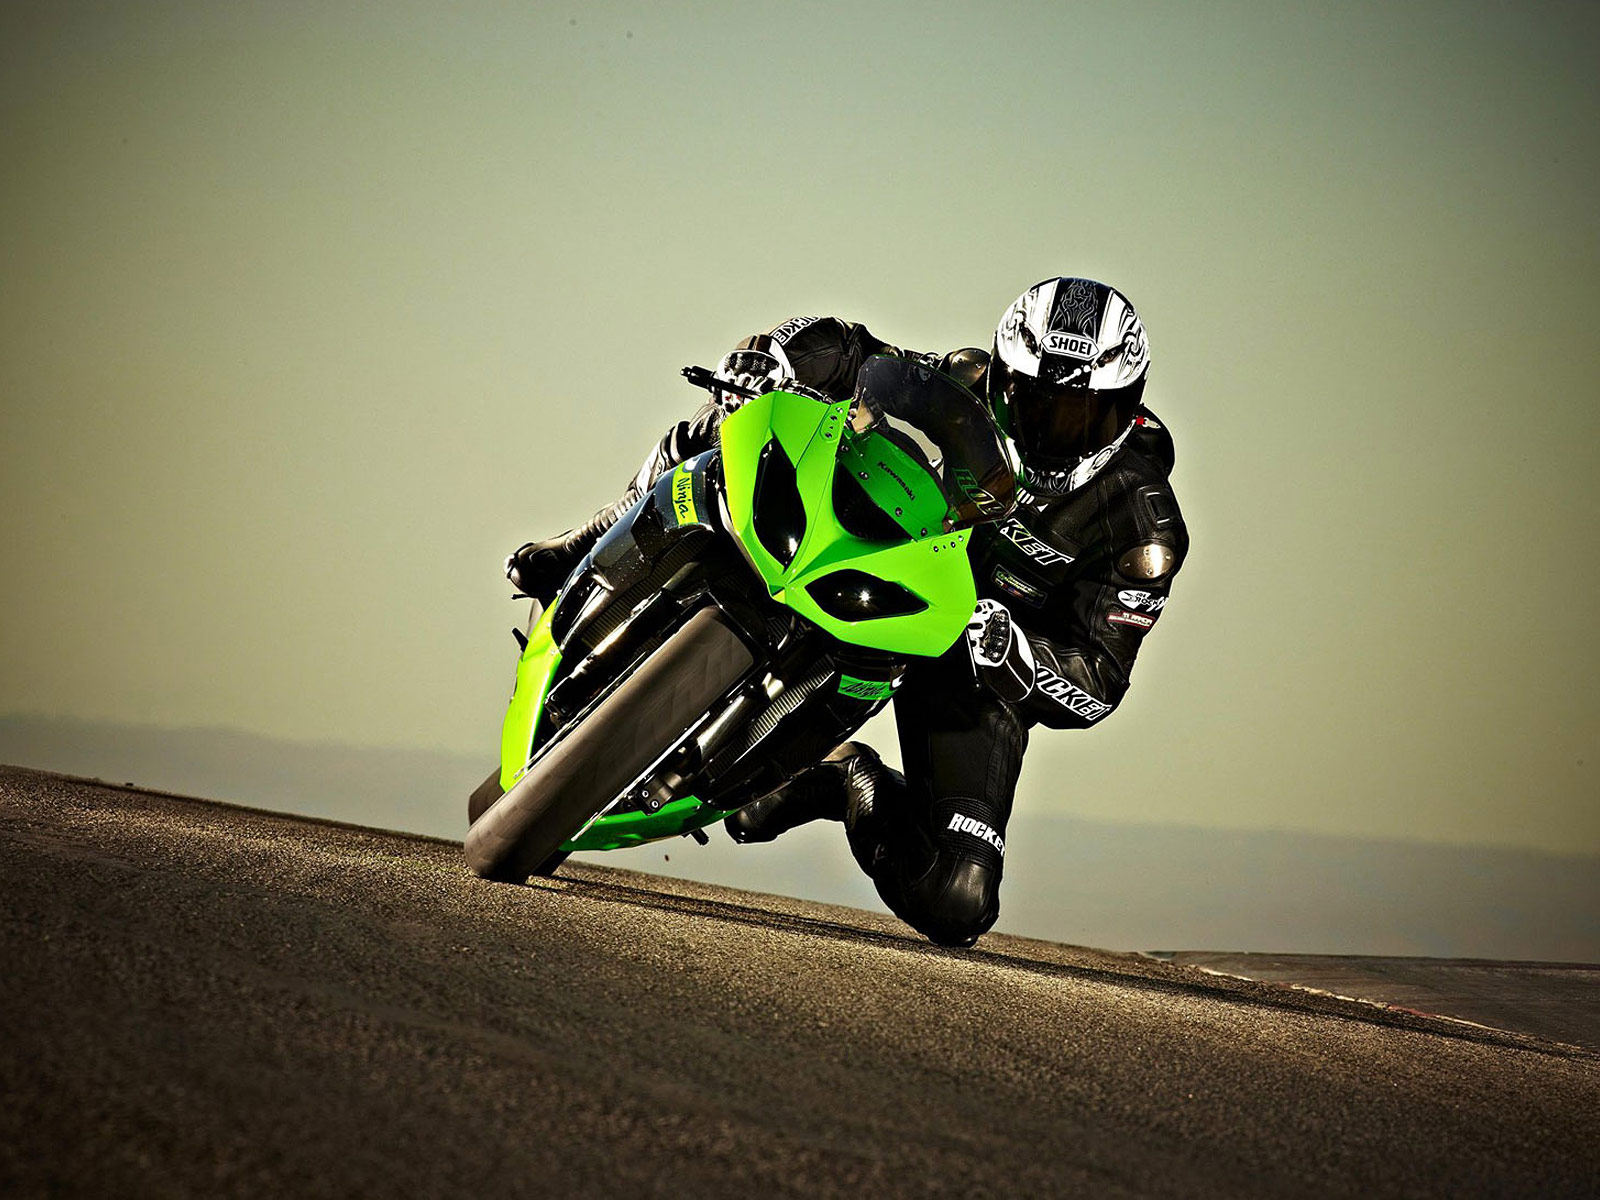 ... kawasaki wallpapers